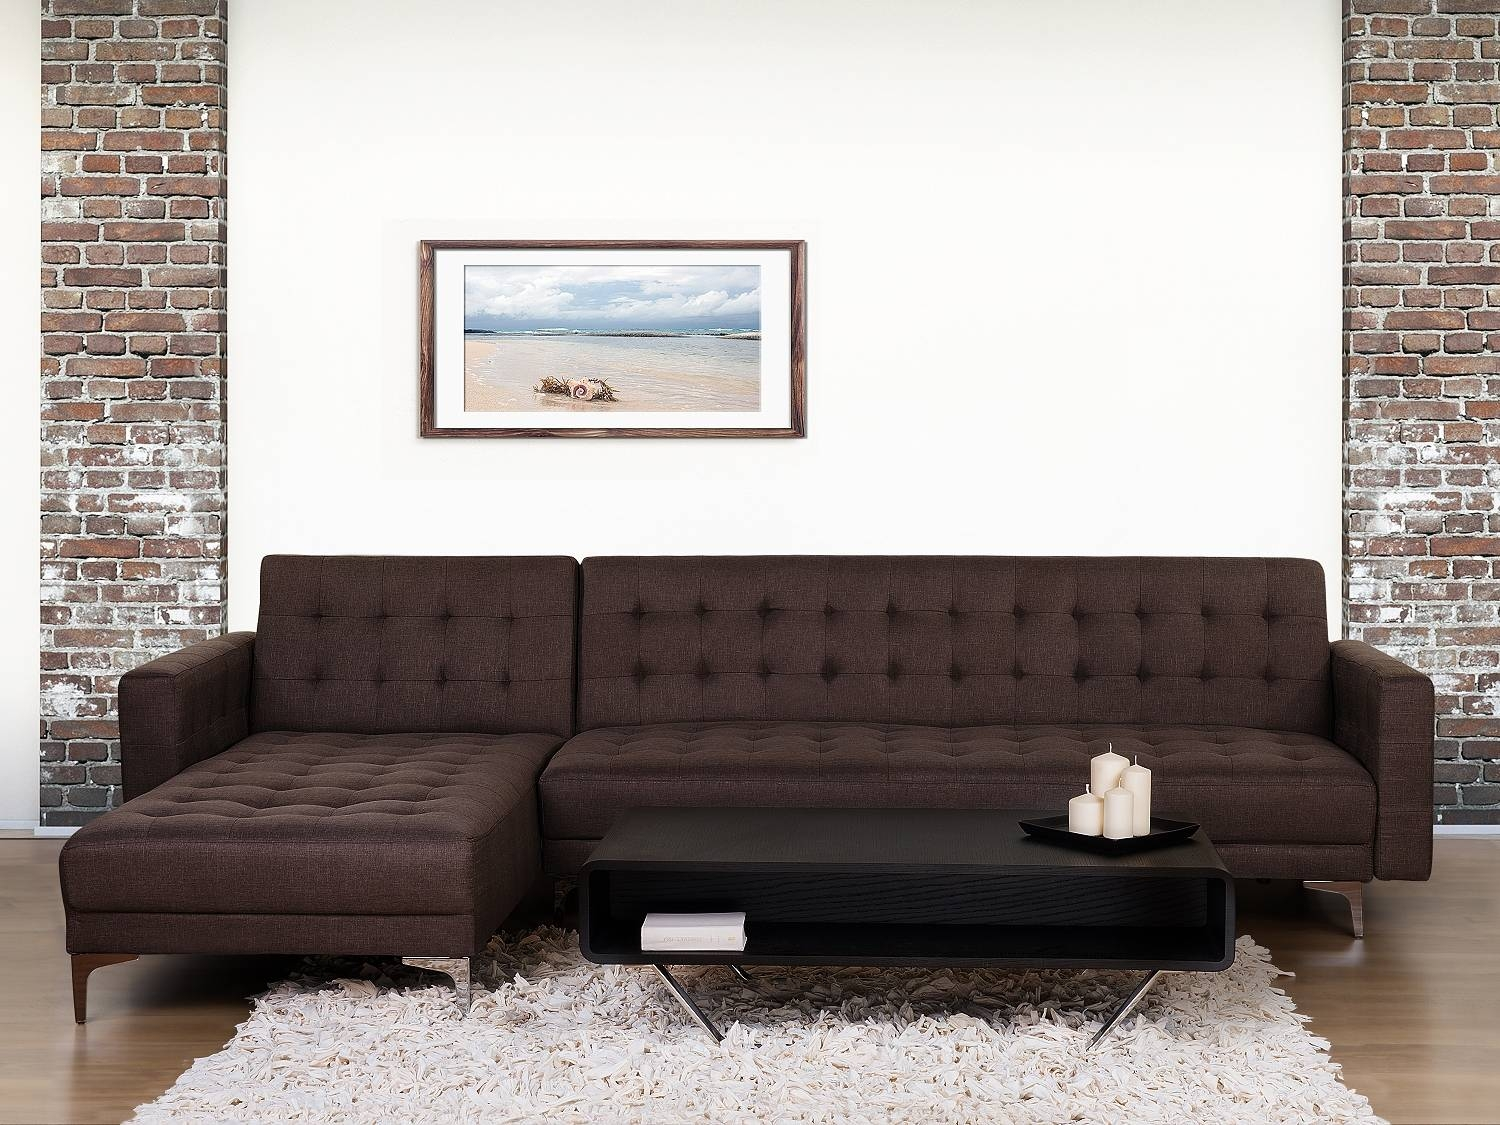 Brown Fabric Corner Sofa Bed Right / Left Side Armrest Sleep with regard to Fabric Corner Sofa Bed (Image 9 of 30)